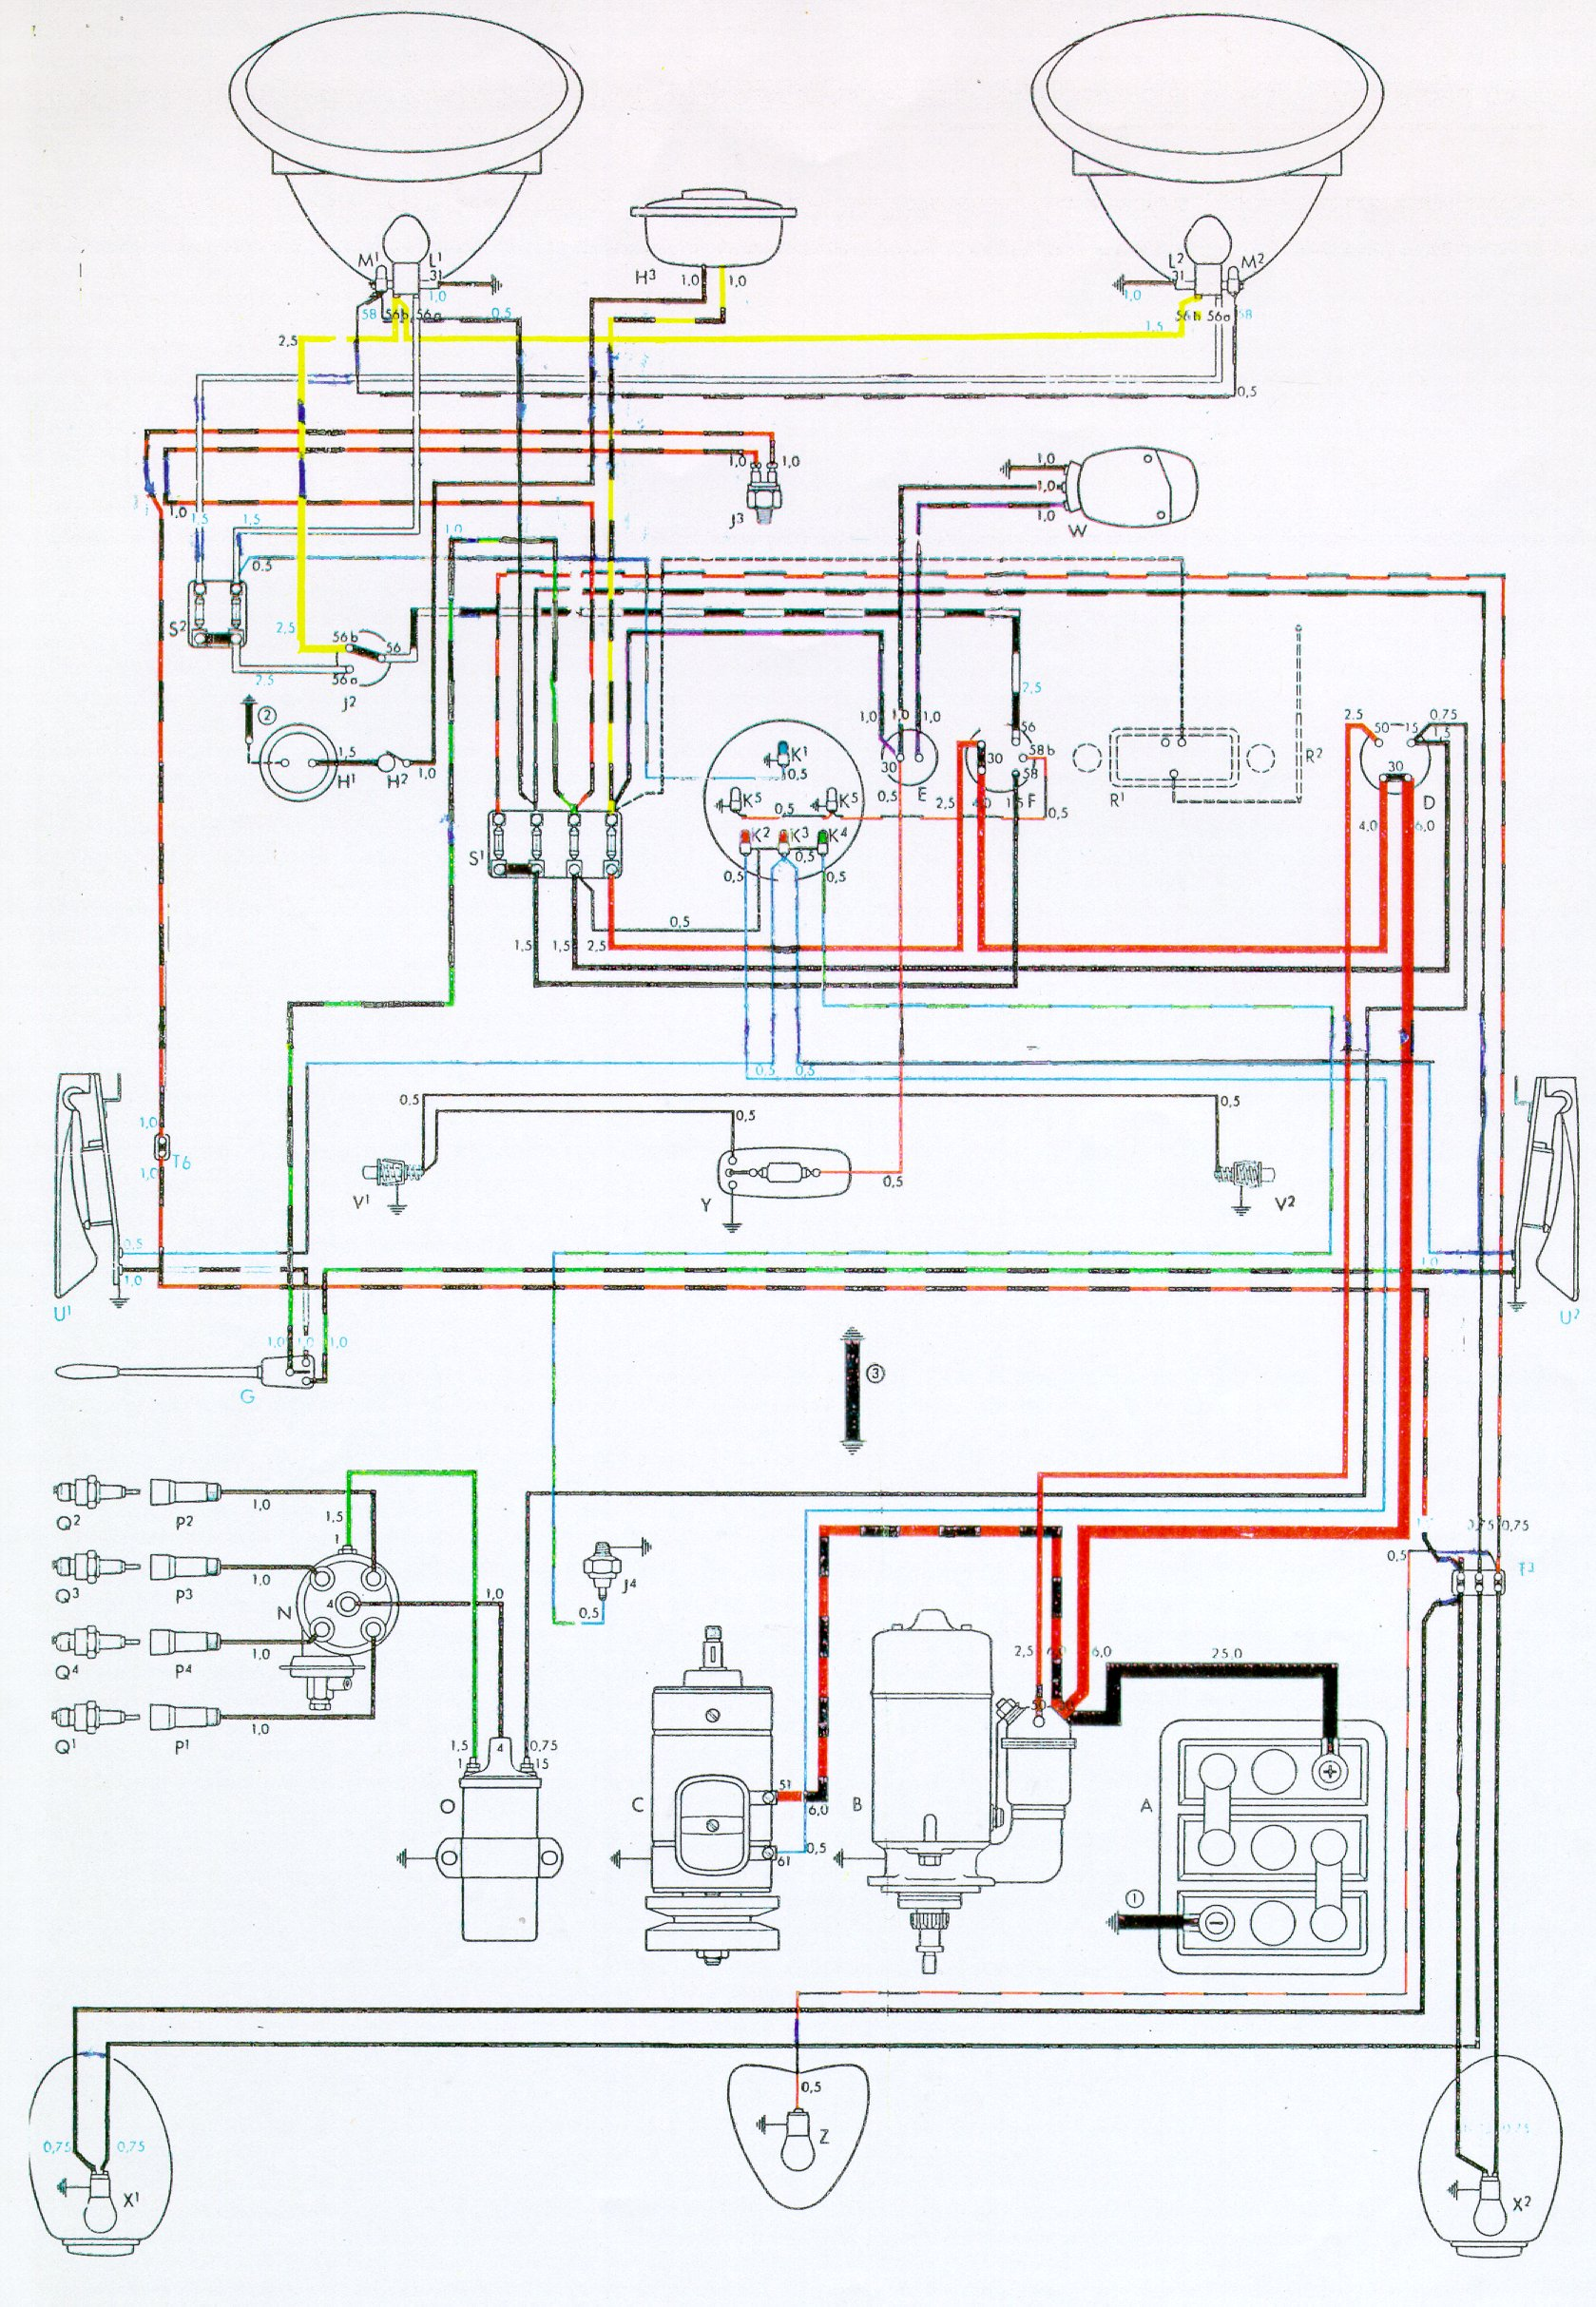 hight resolution of 1971 vw alternator wiring diagram wiring diagramvintagebus com vw bus and other wiring diagrams1971